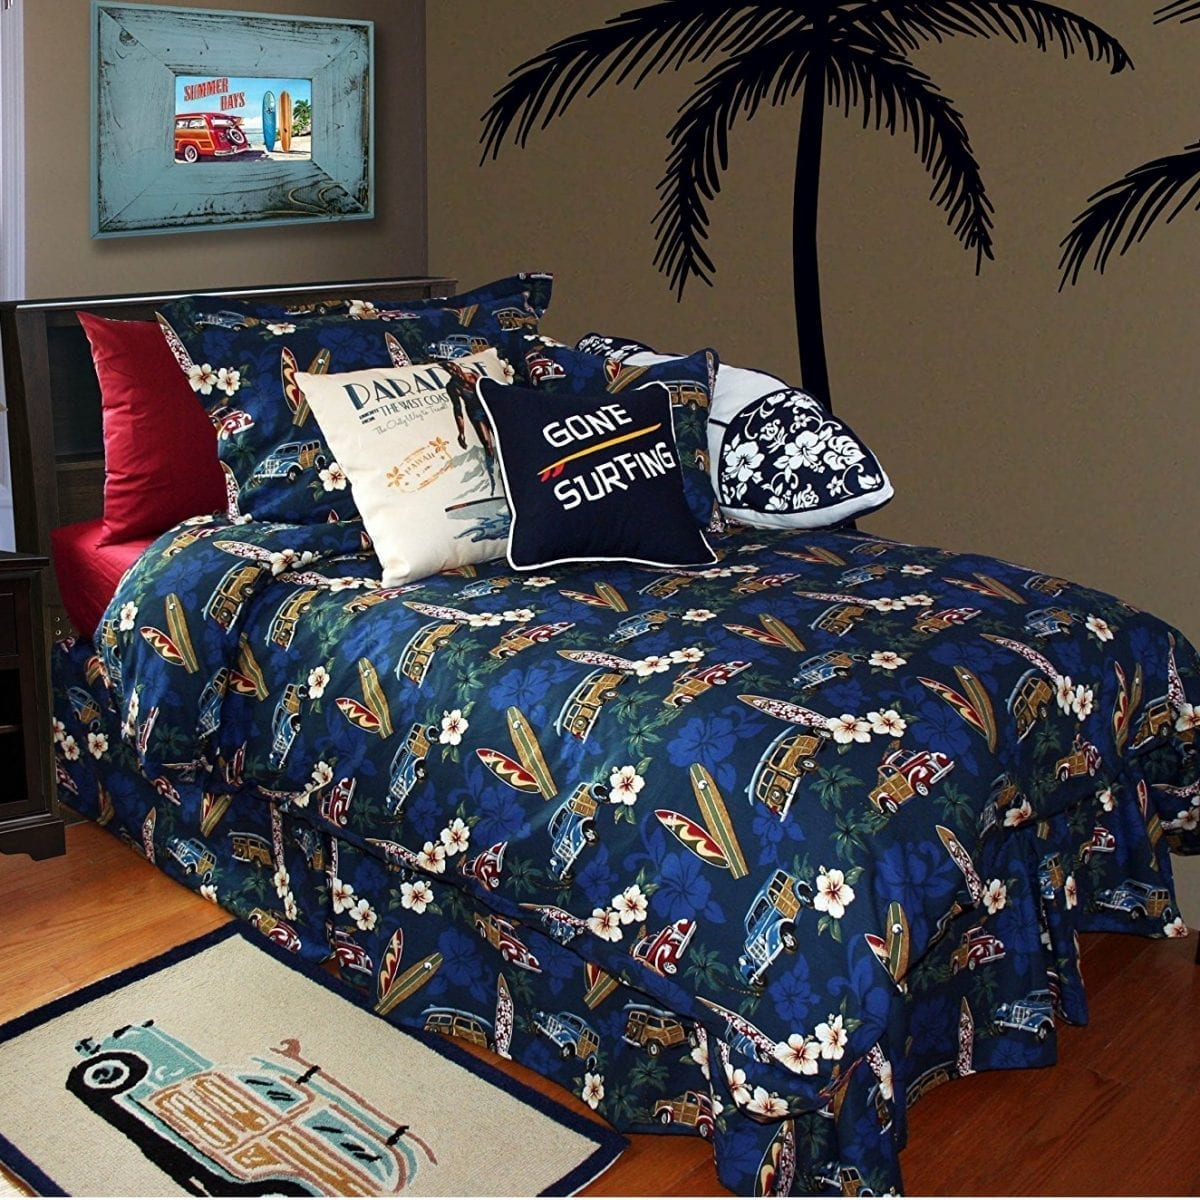 surf-bedding-set Coastal Bedding and Beach Bedding Sets